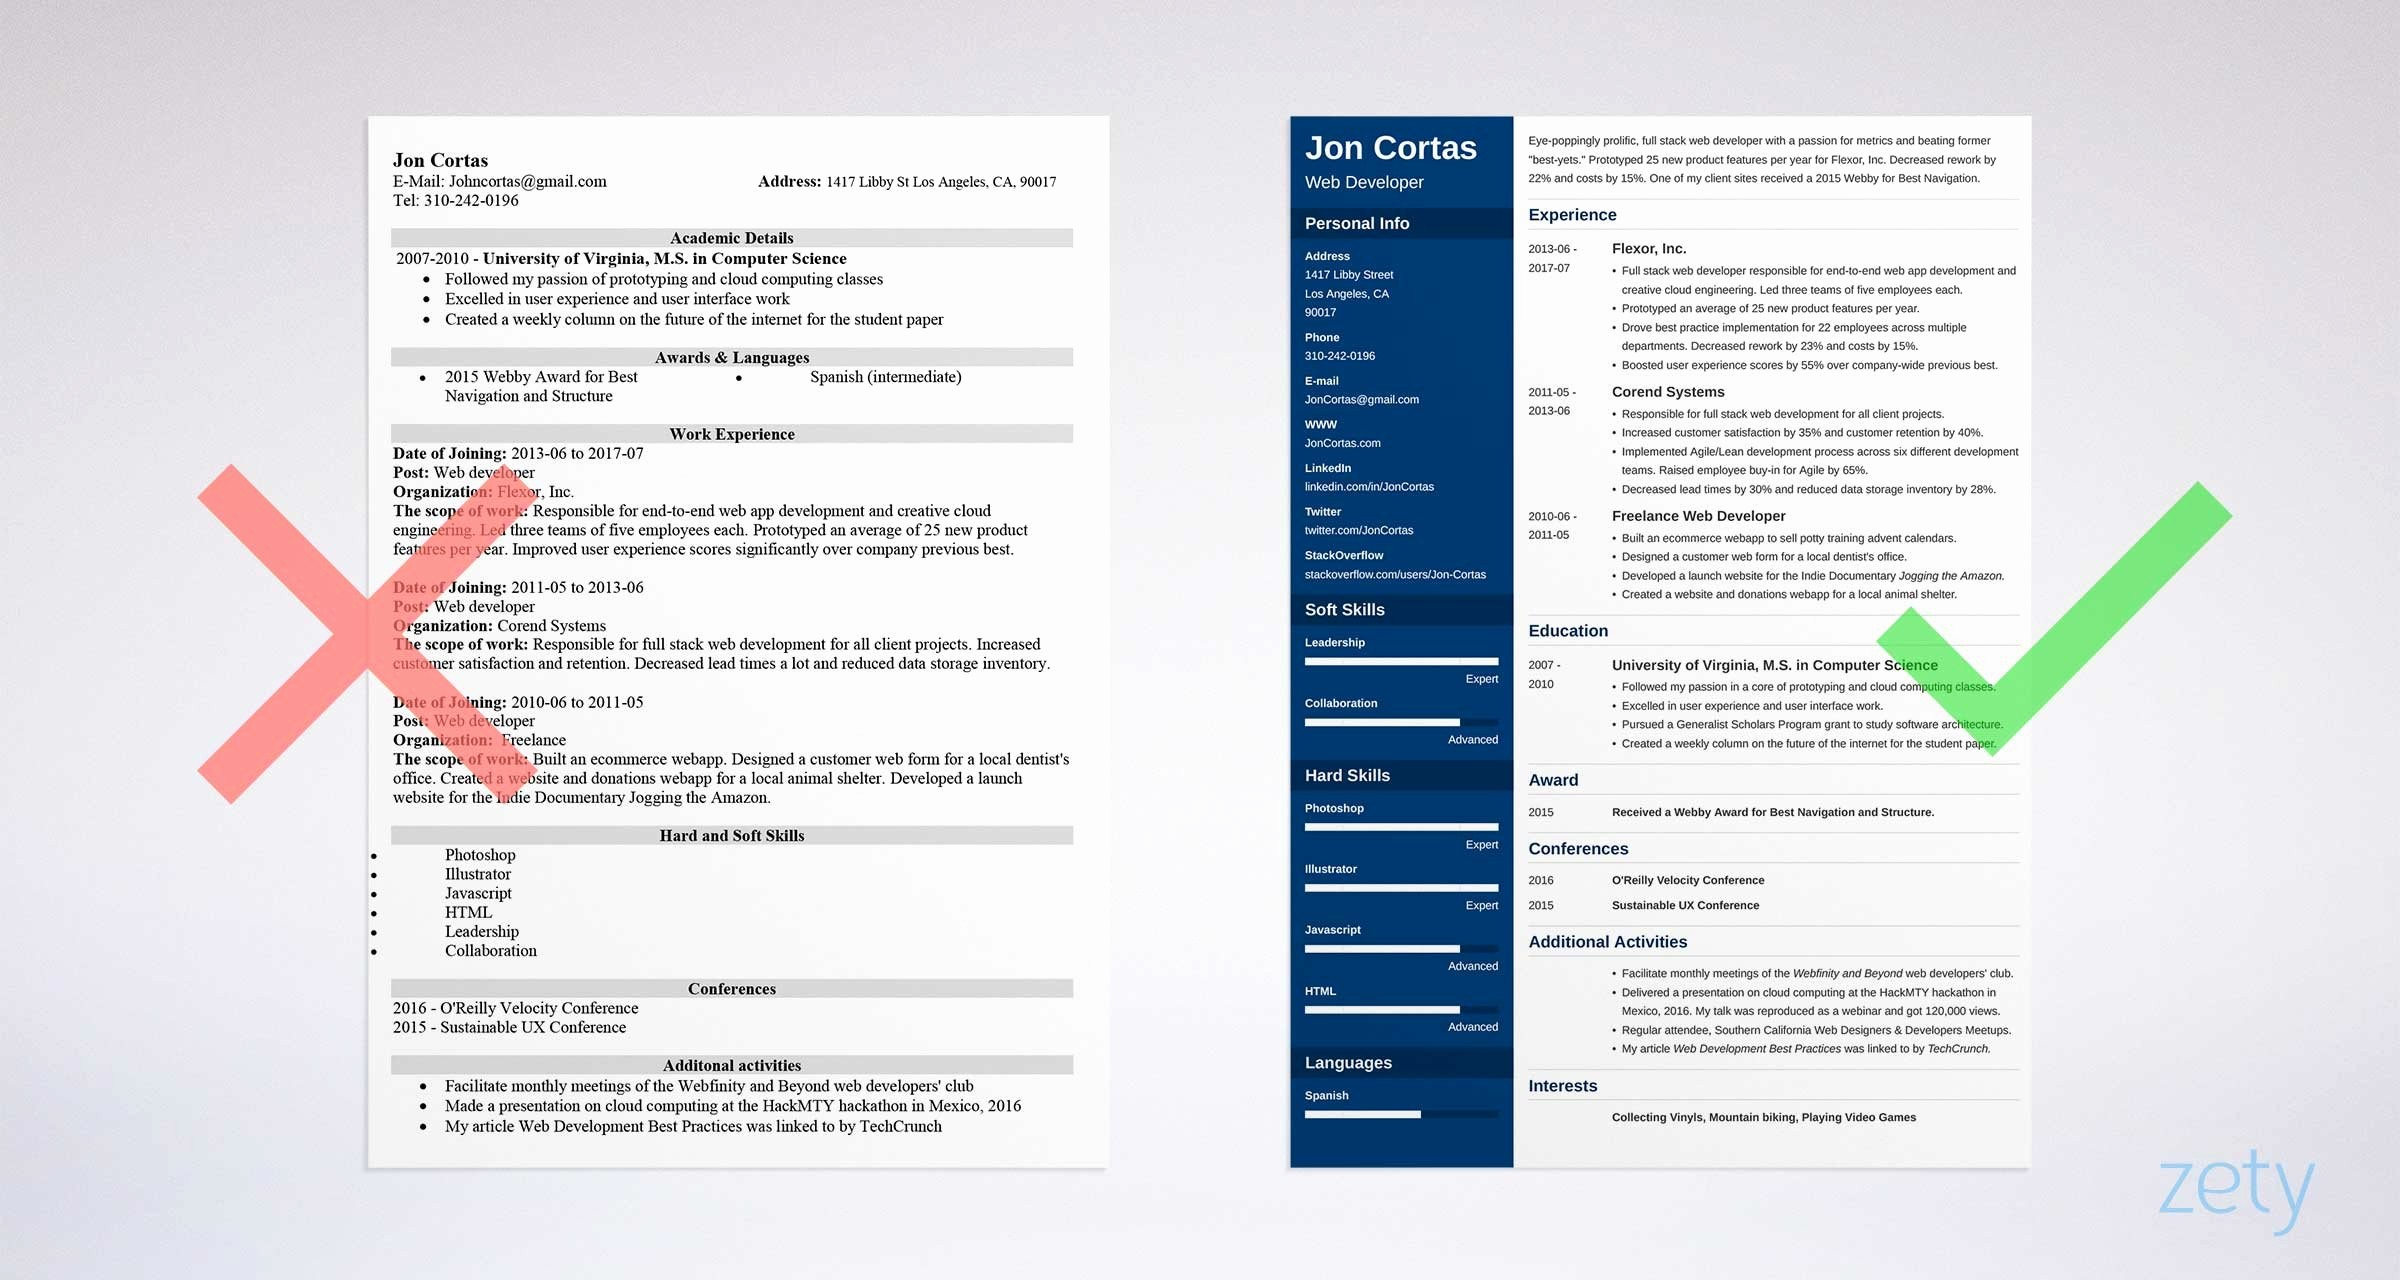 Sample Resume In Word format New Free Resume Templates for Word 15 Cv Resume formats to